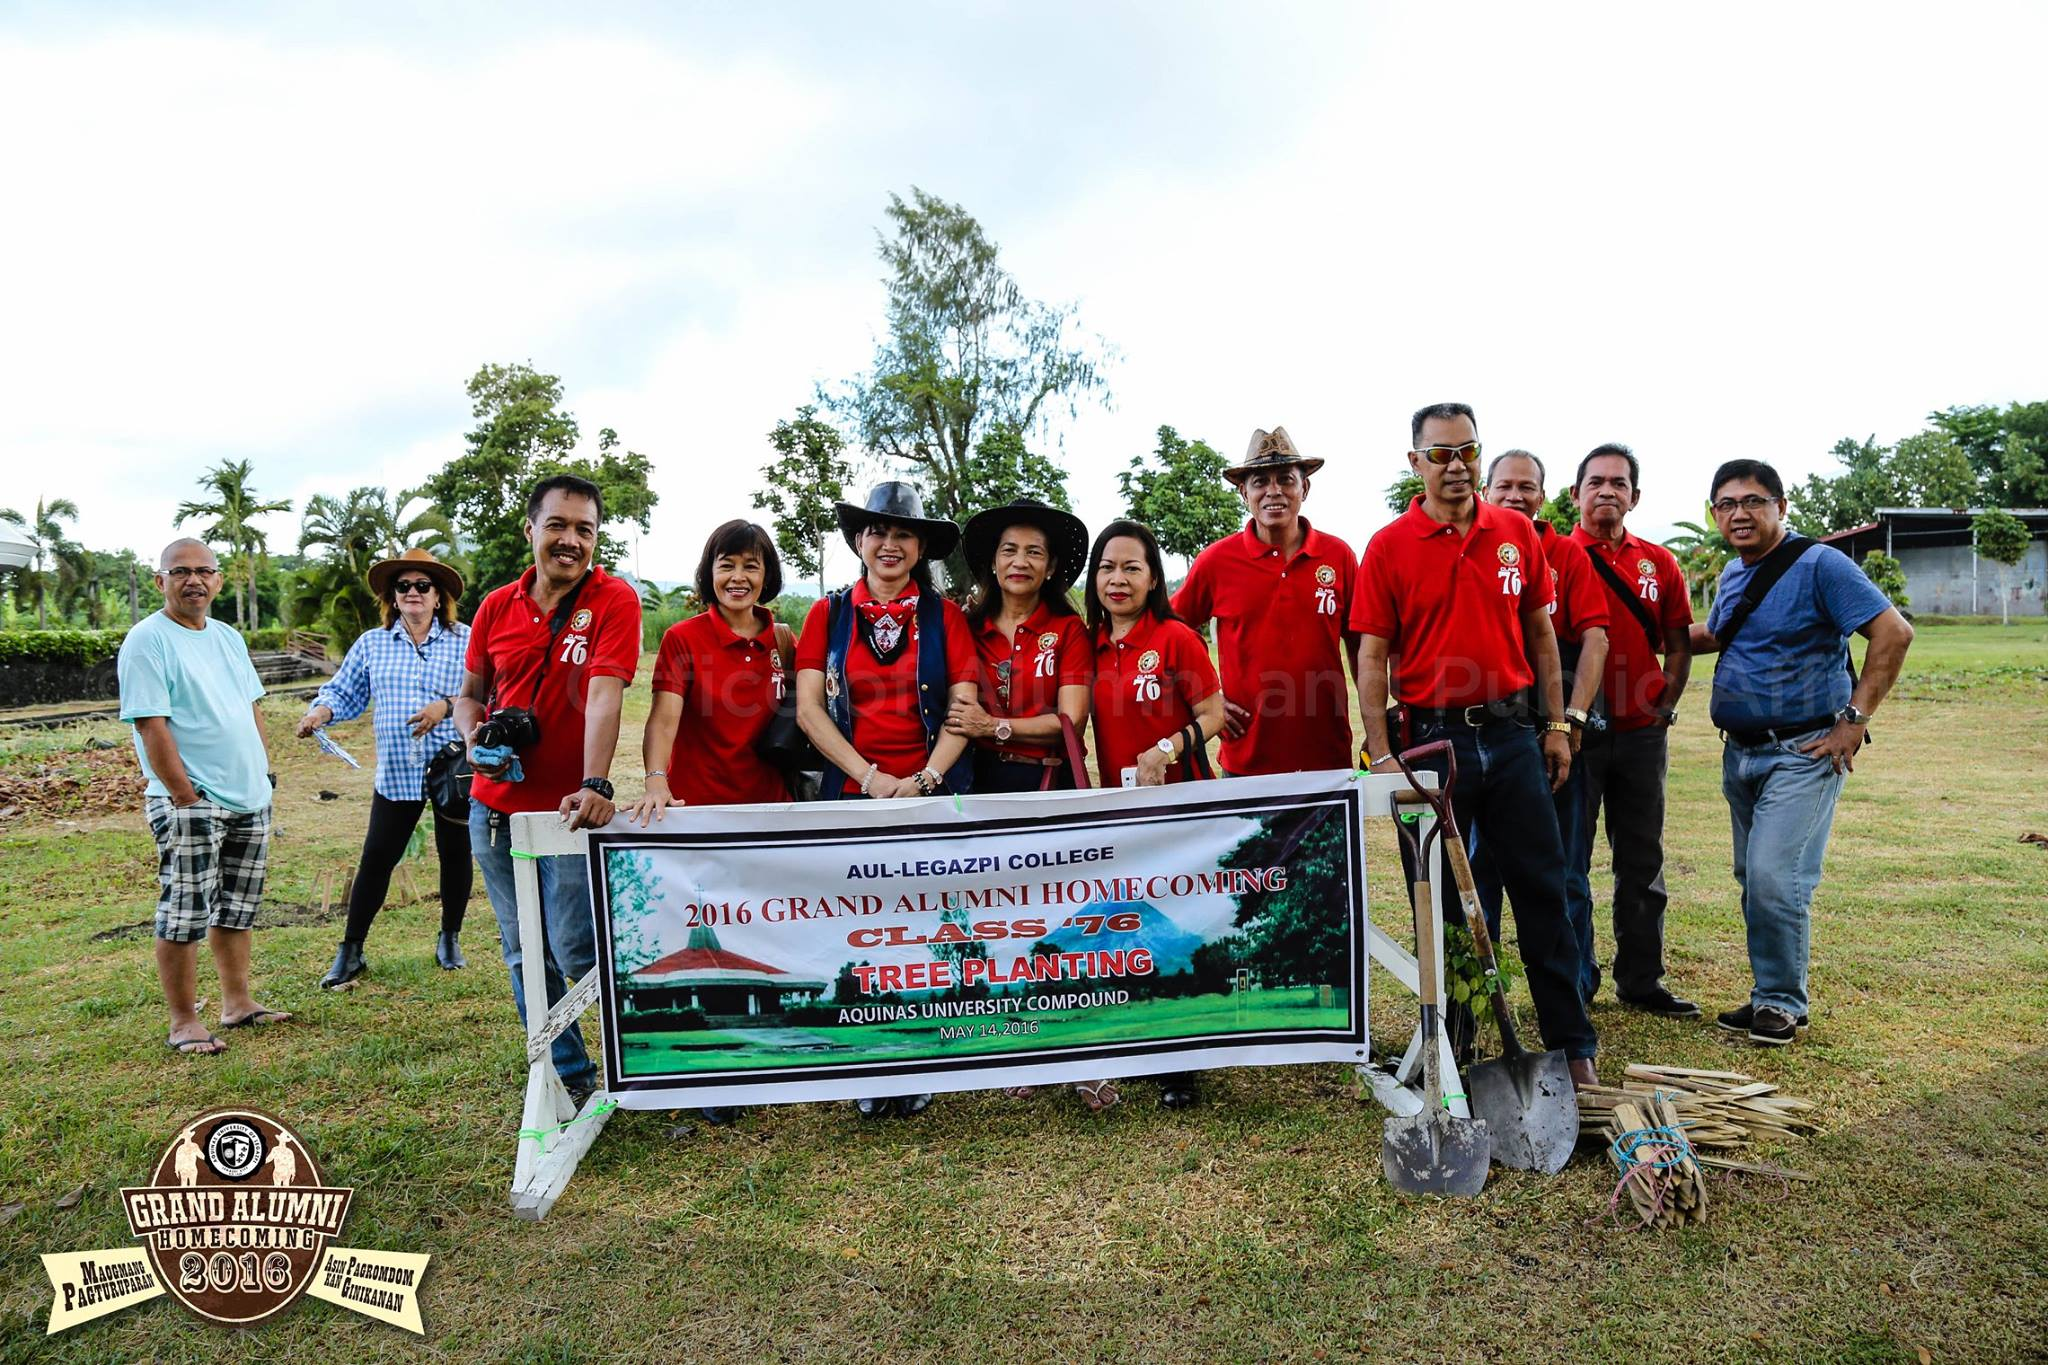 Grand Alumni Homecoming – Tree Planting and Laying of Wreath